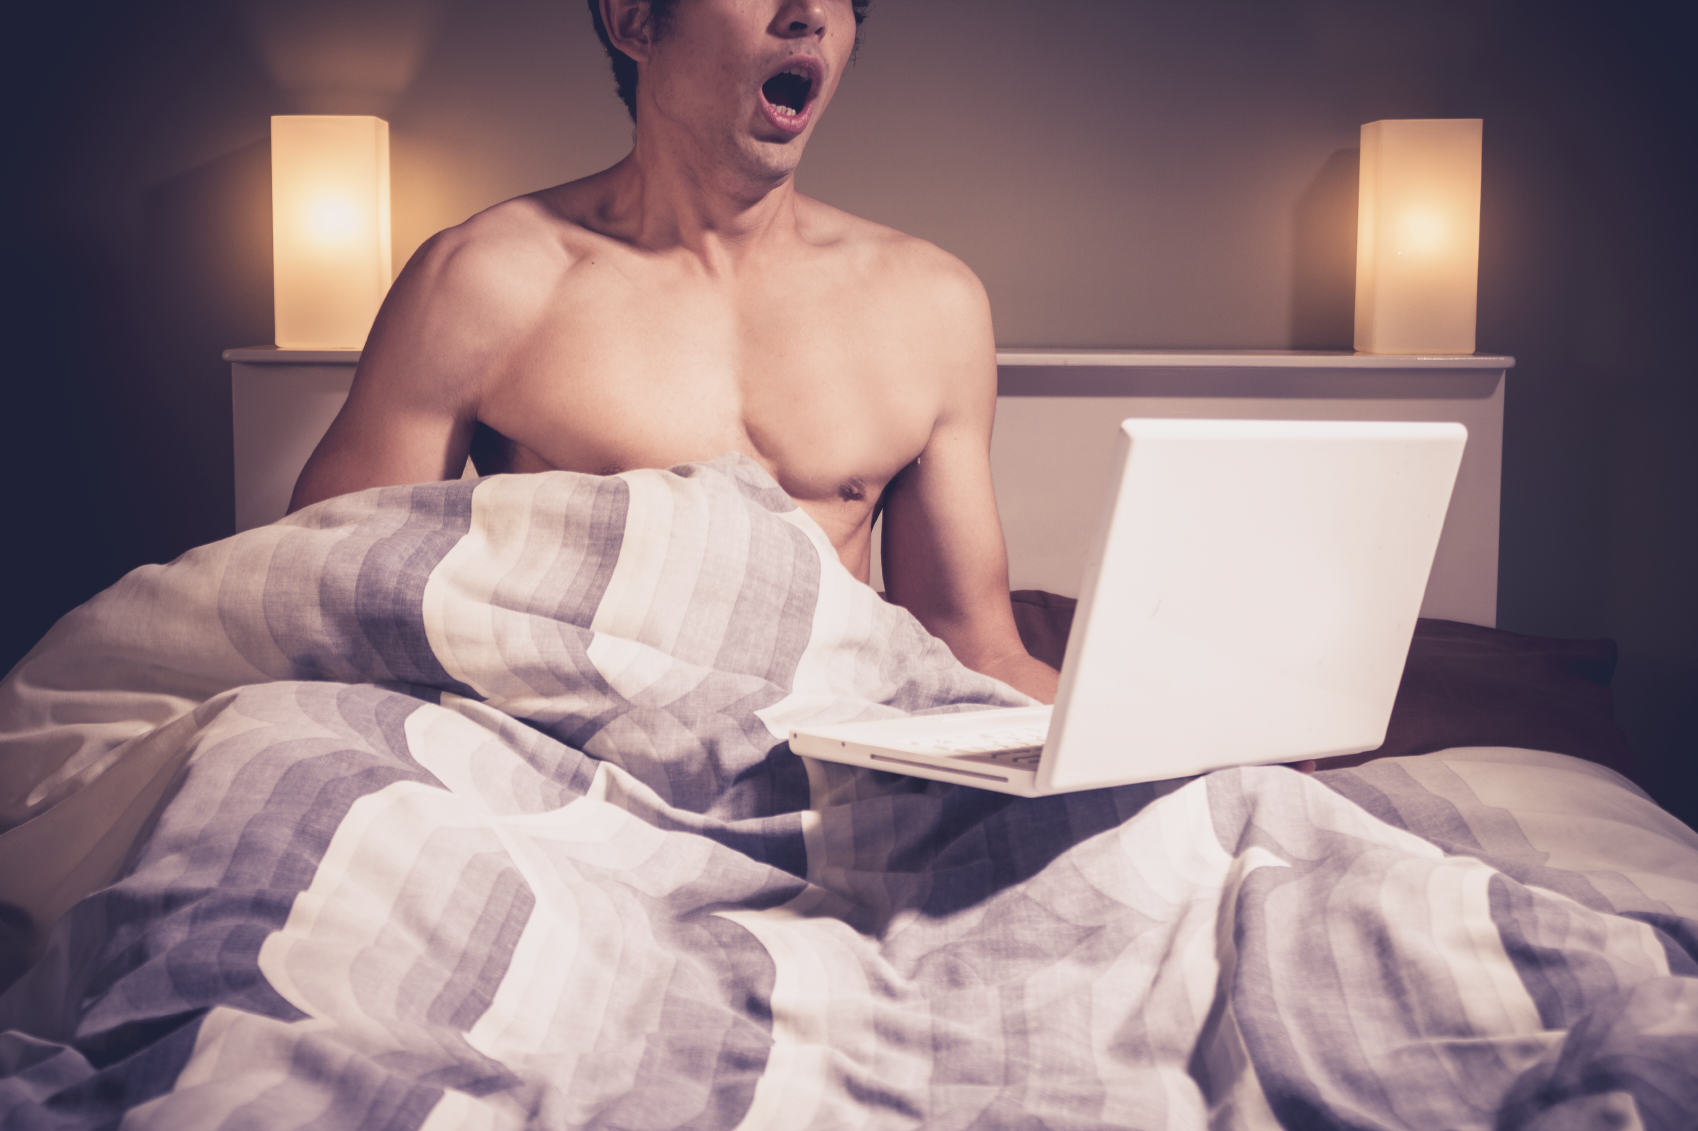 watching porn 1 Watching Porn Might Be Causing You Stress, But Not Why Youd Think